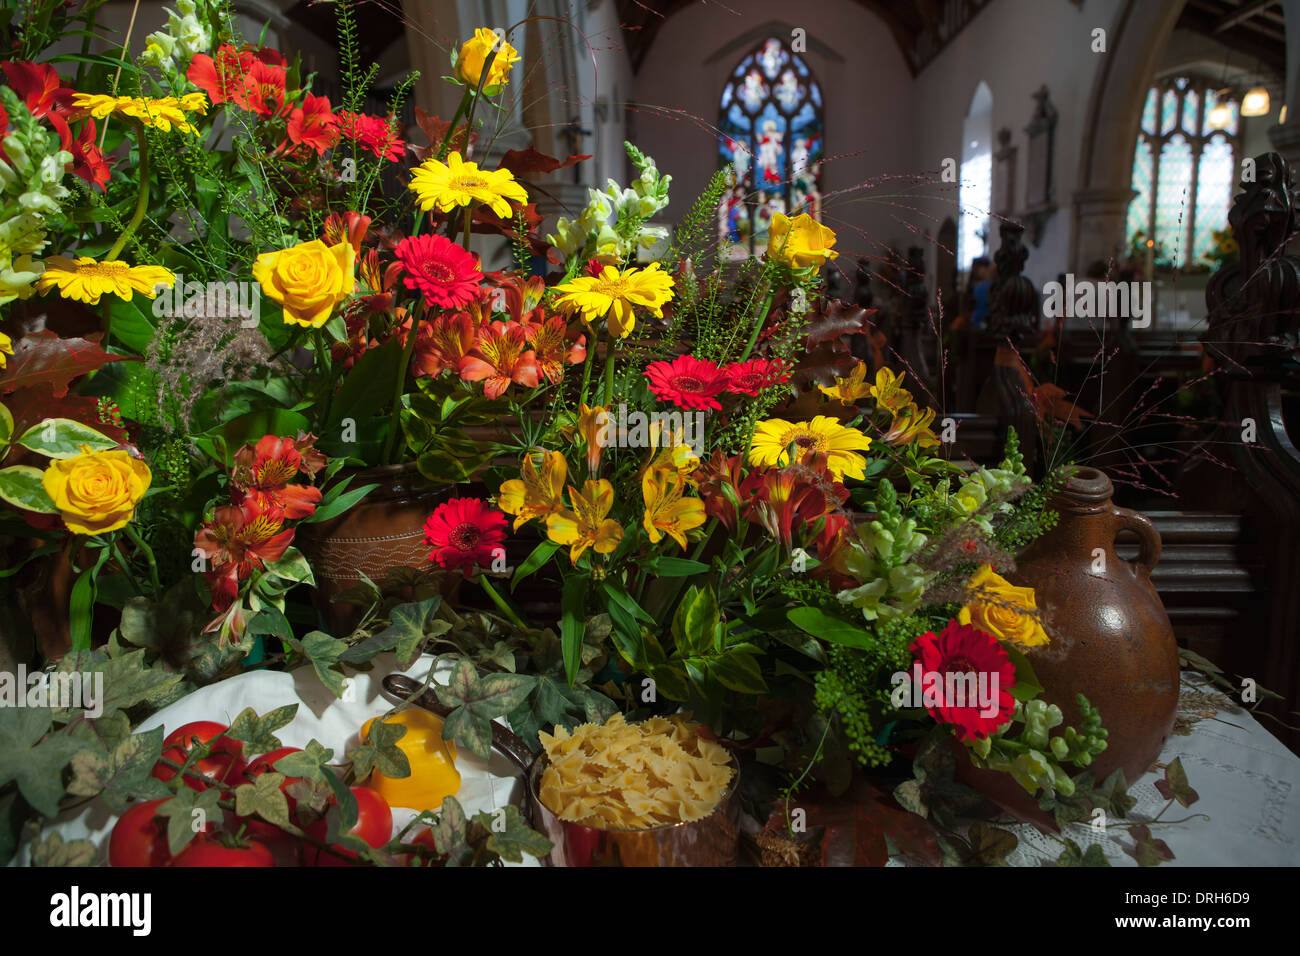 Italian themed flower arrangement in English country church at Harvest festival - Stock Image